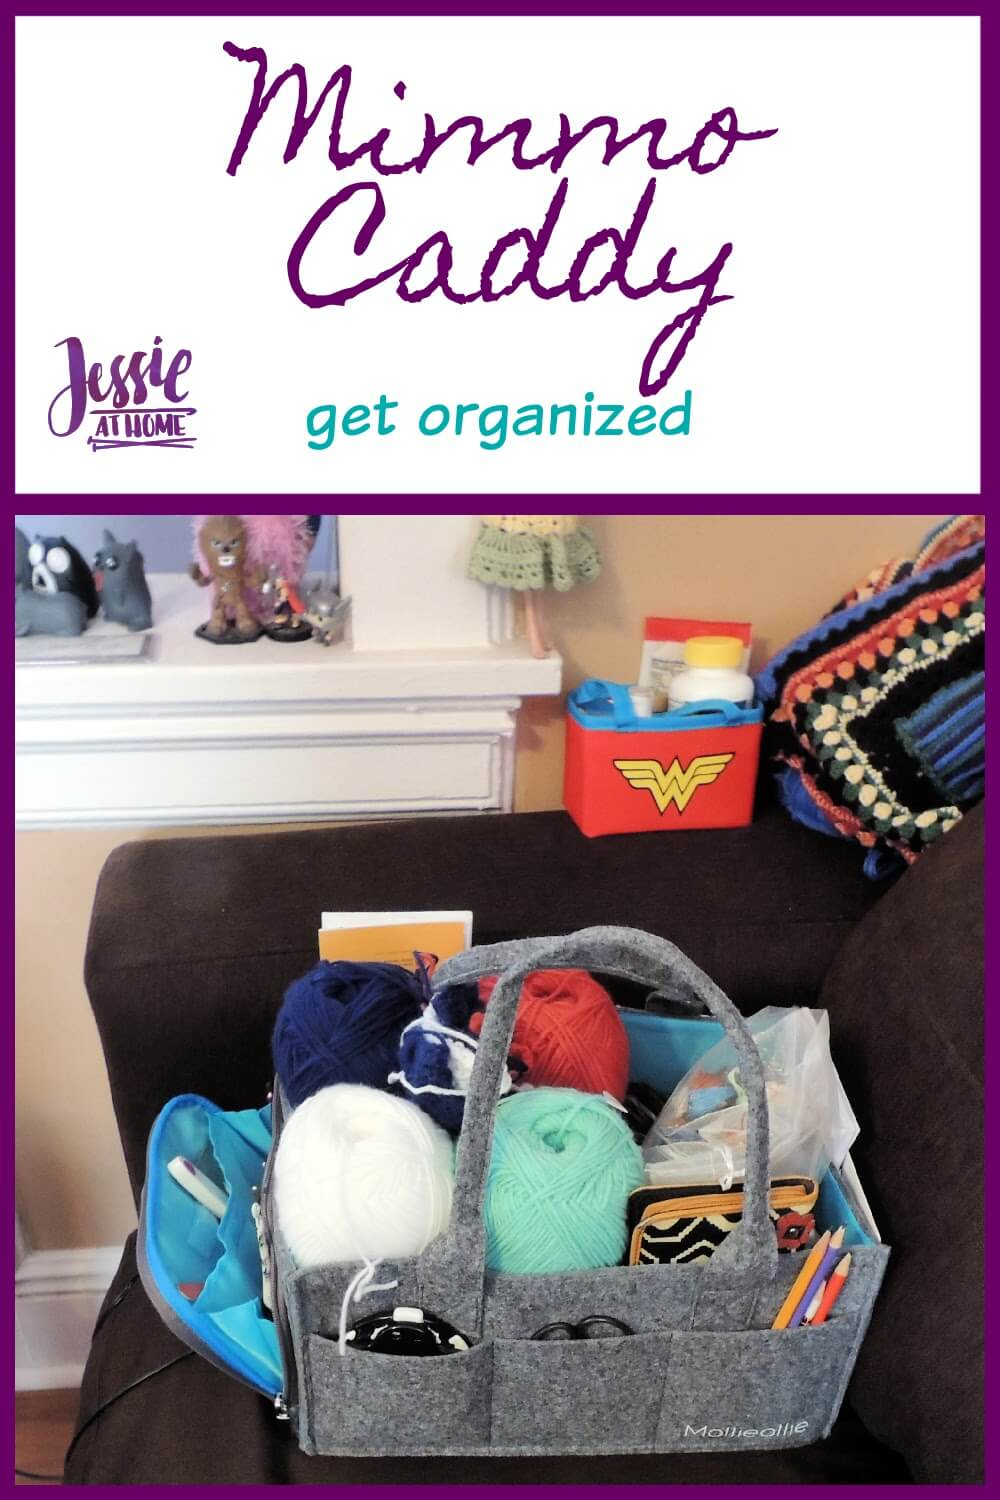 Mimmo Caddy from Mollie Ollie review by Jessie At Home - Pin 1